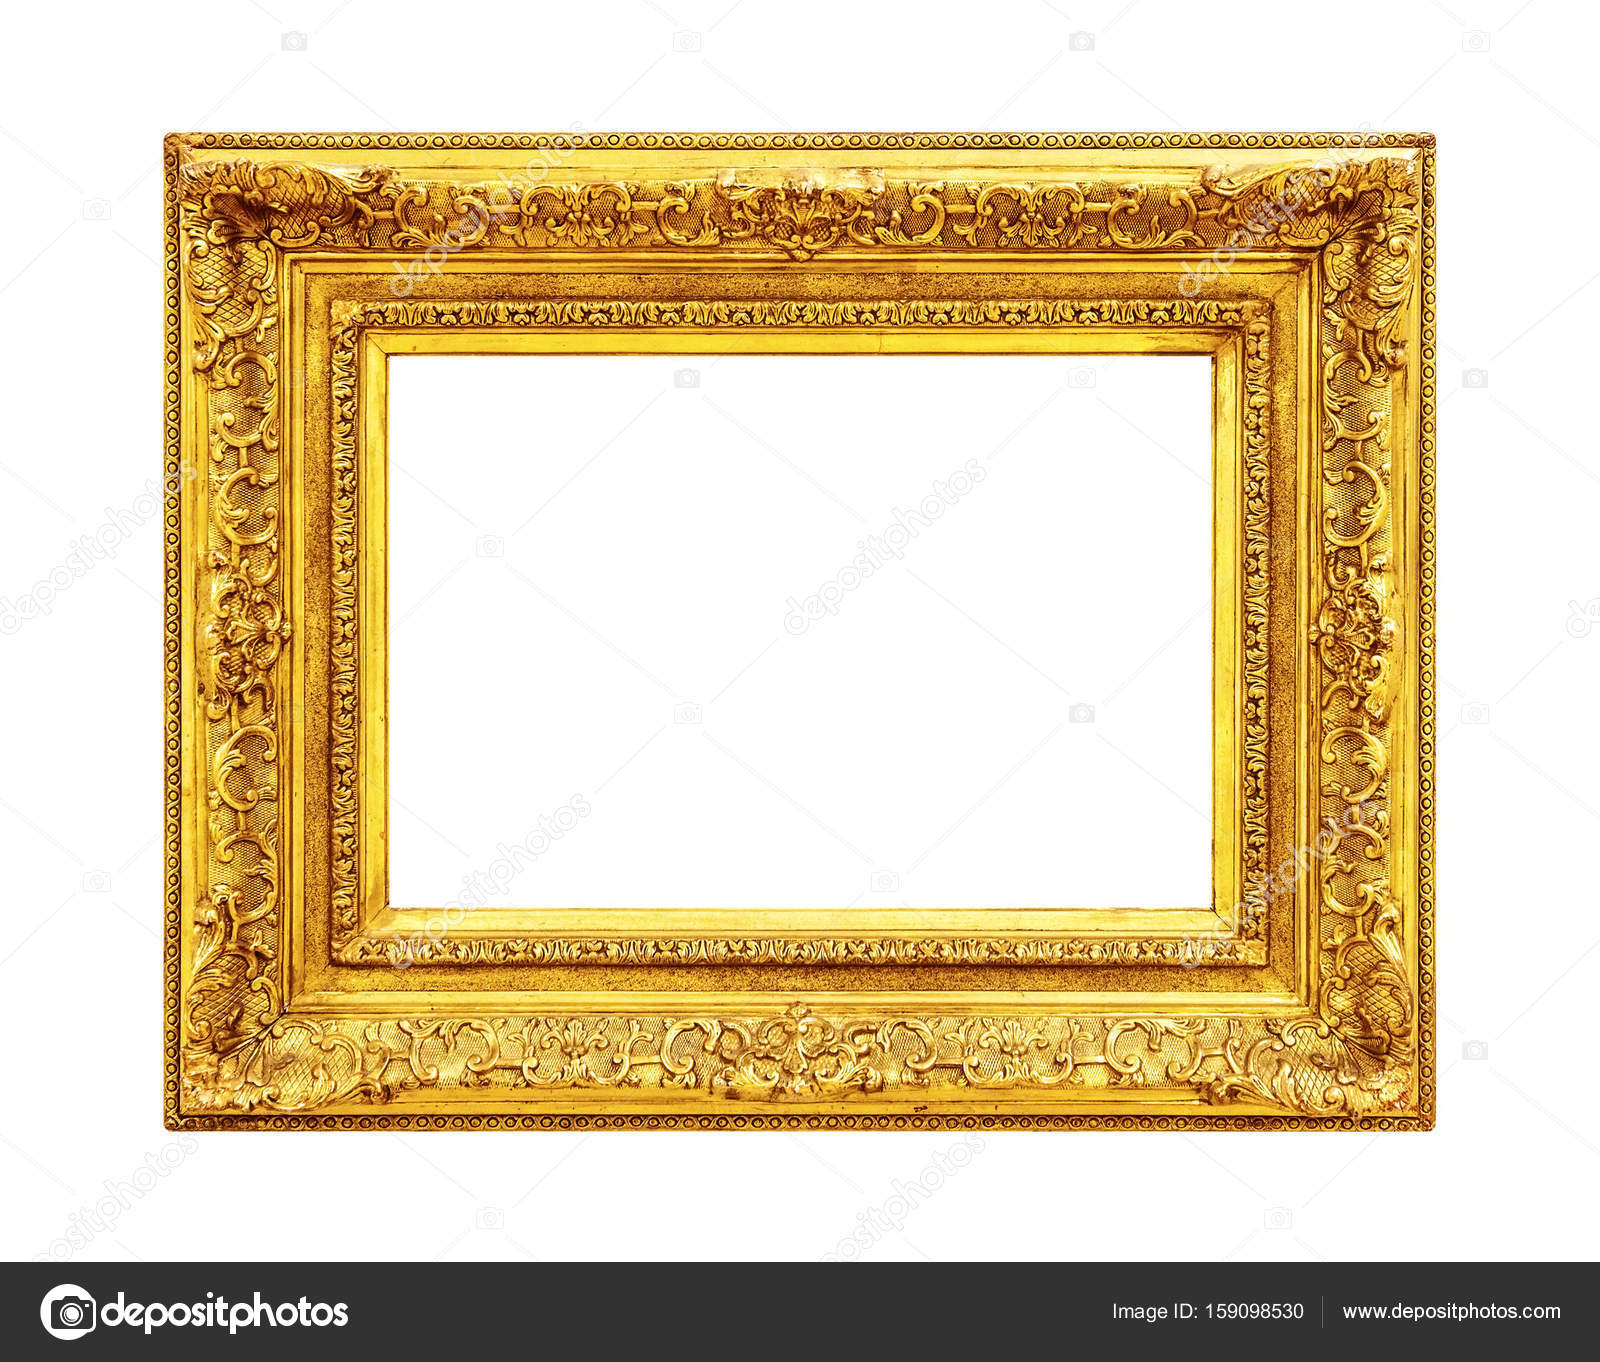 35d5555aec98 Ornate Gold Frame Isolated On White Background Stock Photo